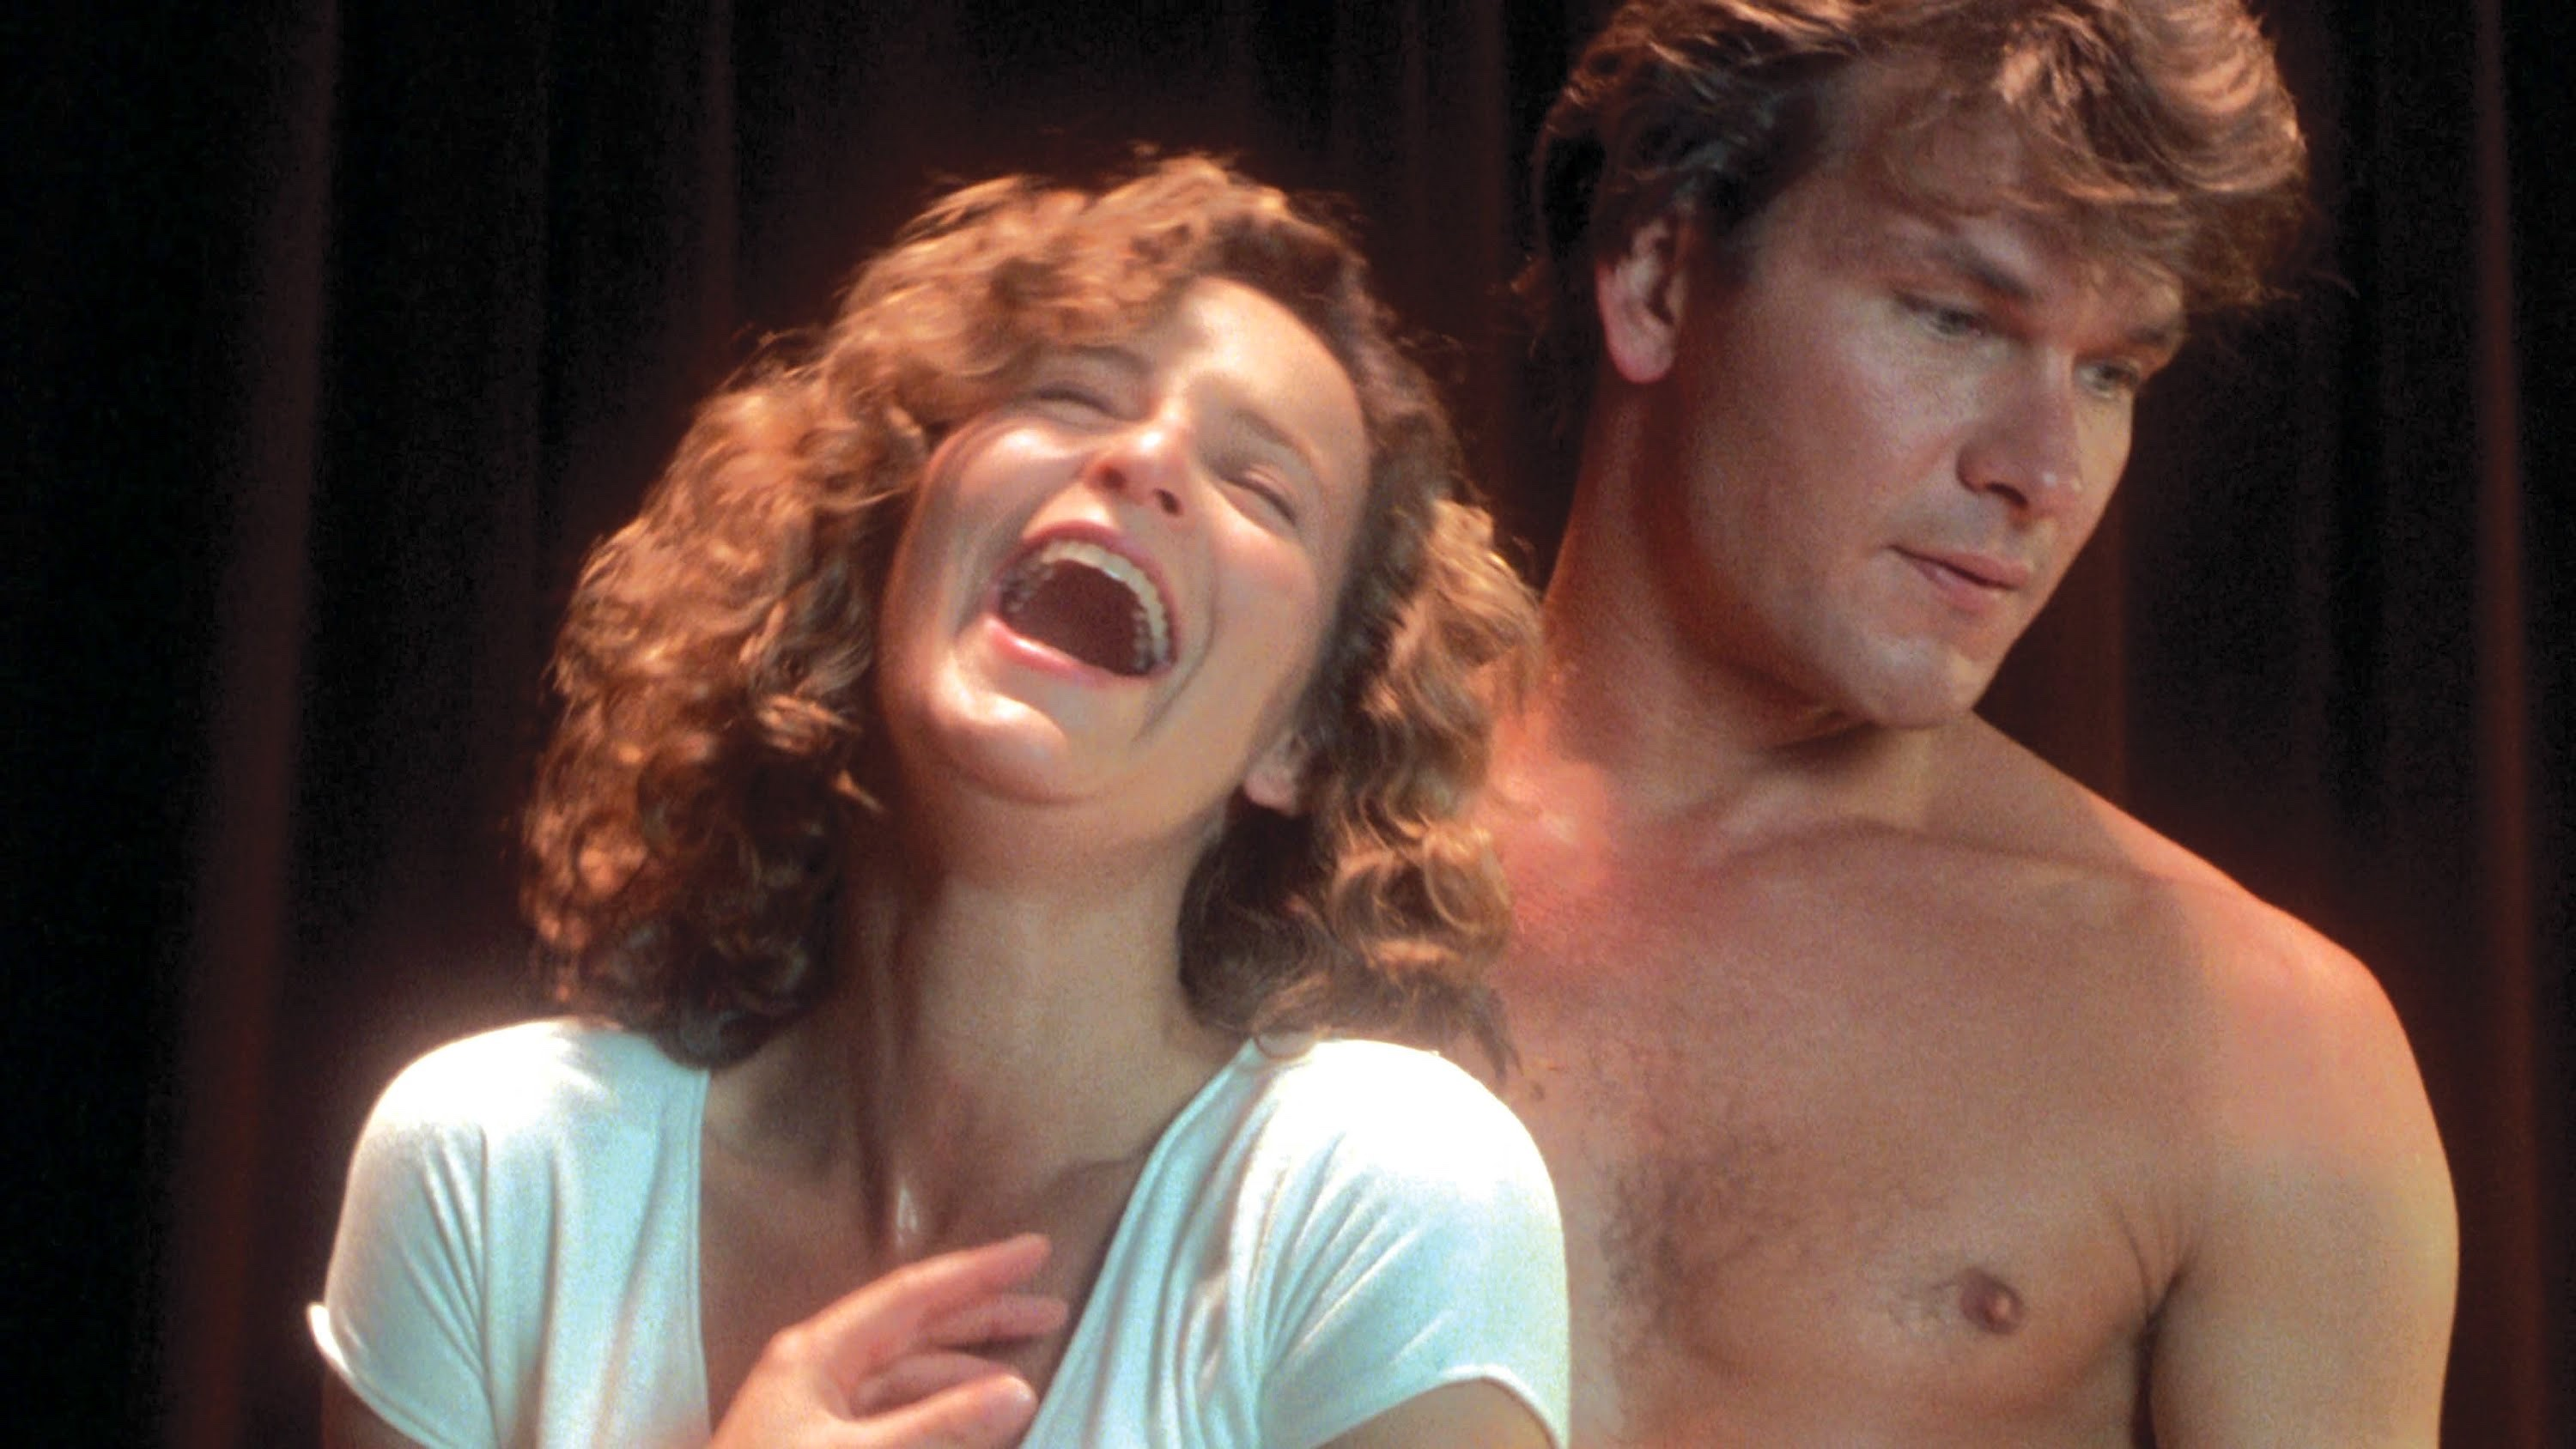 Swayze, topless, standing behind a Grey who is laughing hysterically